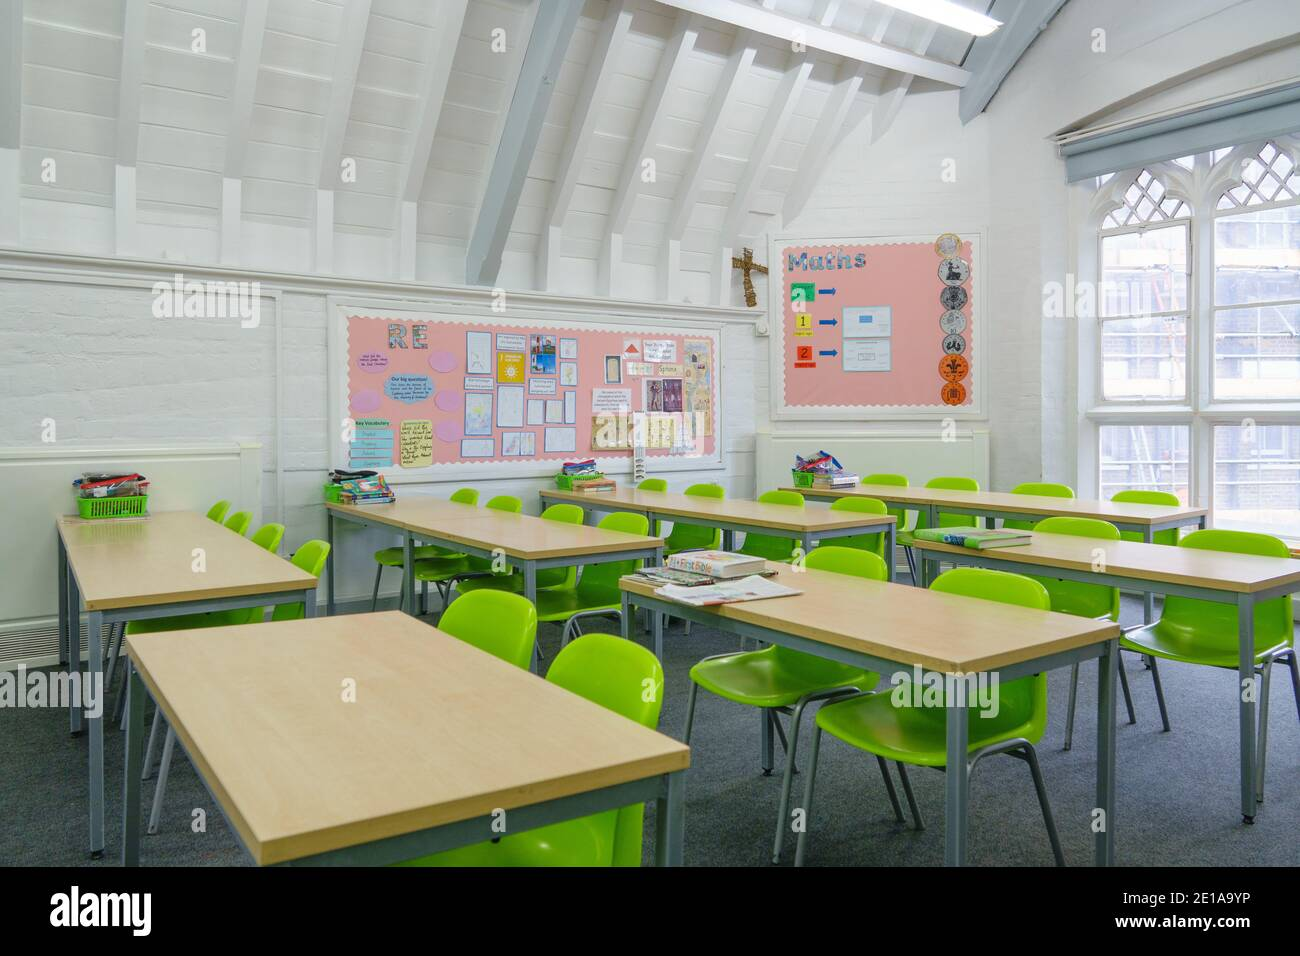 typical-primary-middle-school-classroom-